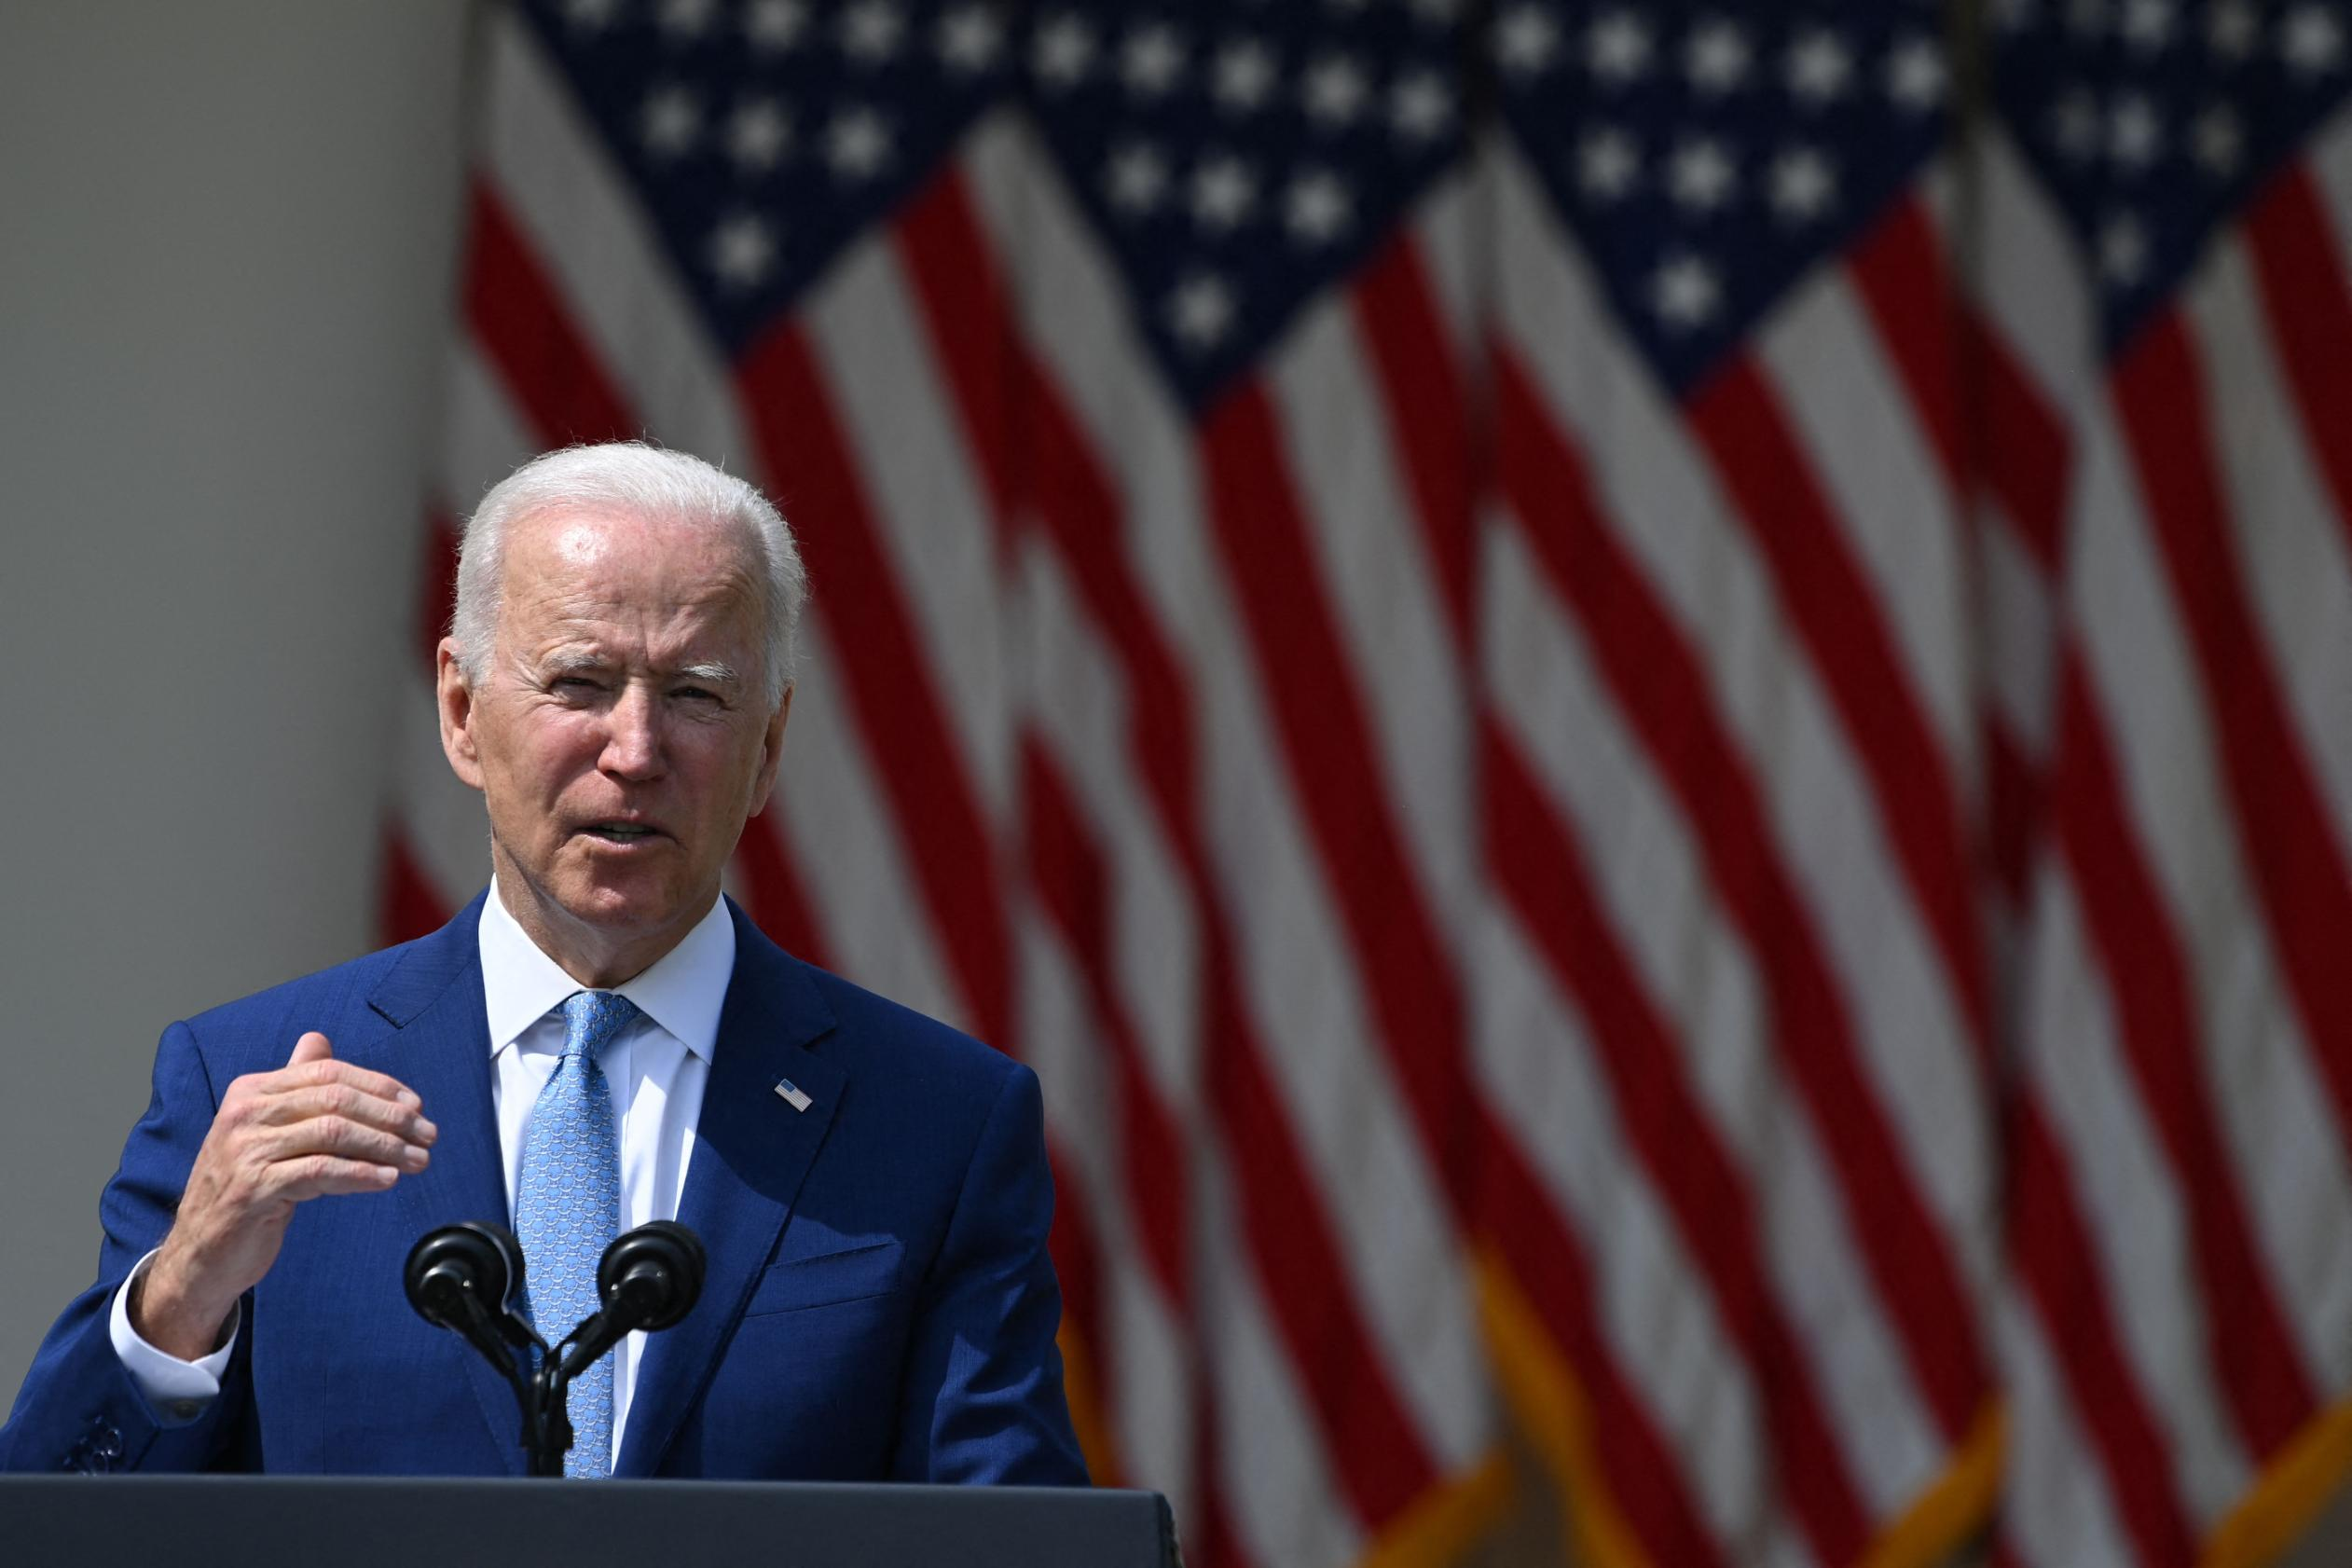 Biden calls for 'peace and calm' in the wake of Daunte Wright's fatal encounter with police in Minnesota